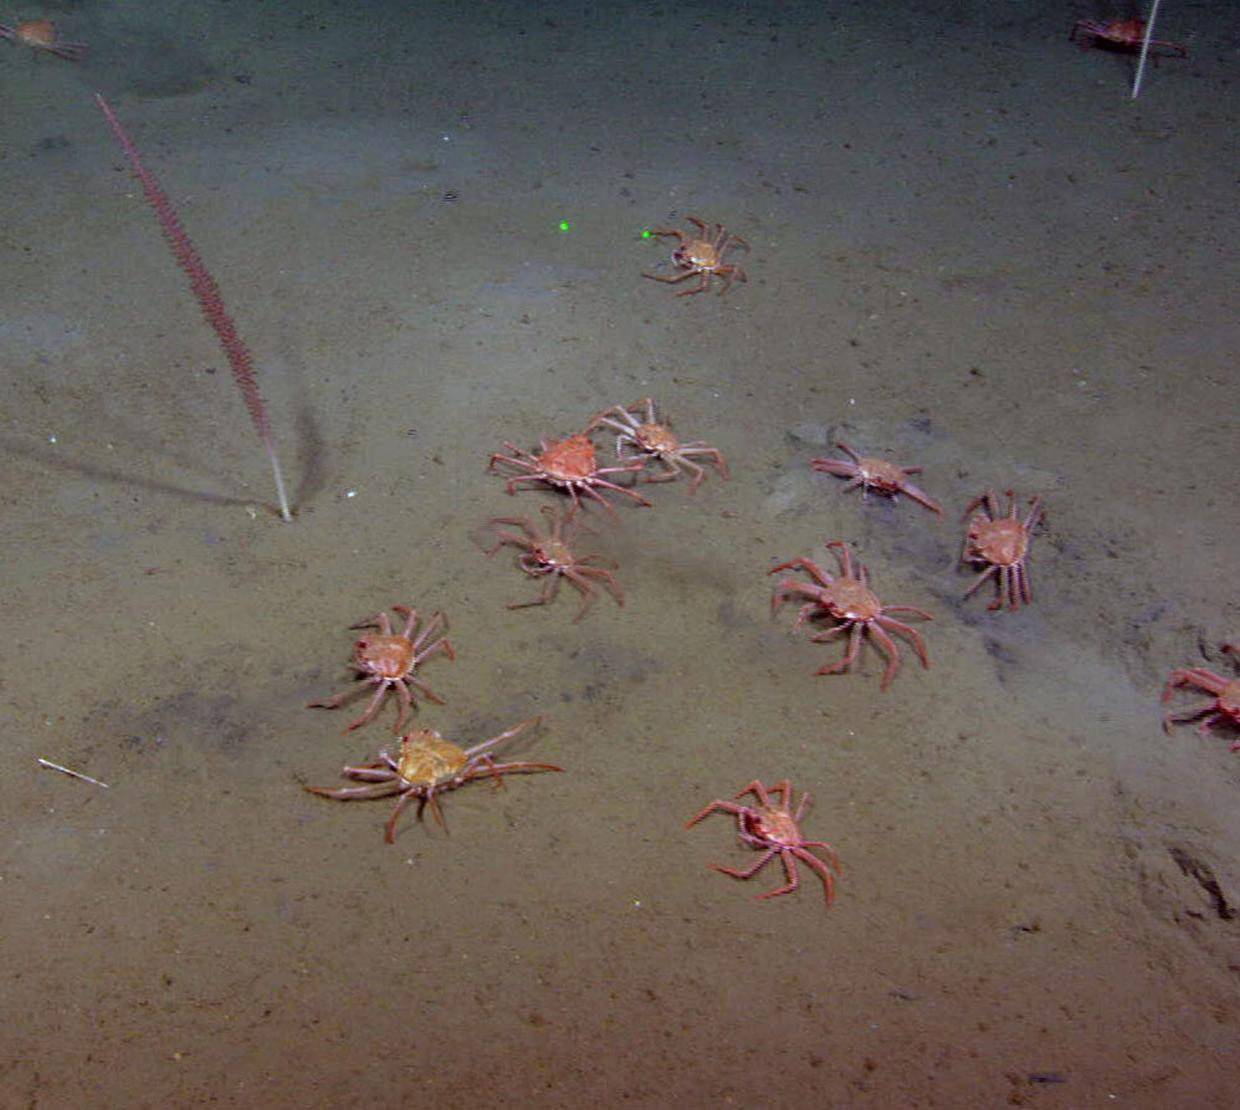 Group of Tanner crabs sitting on ocean floor